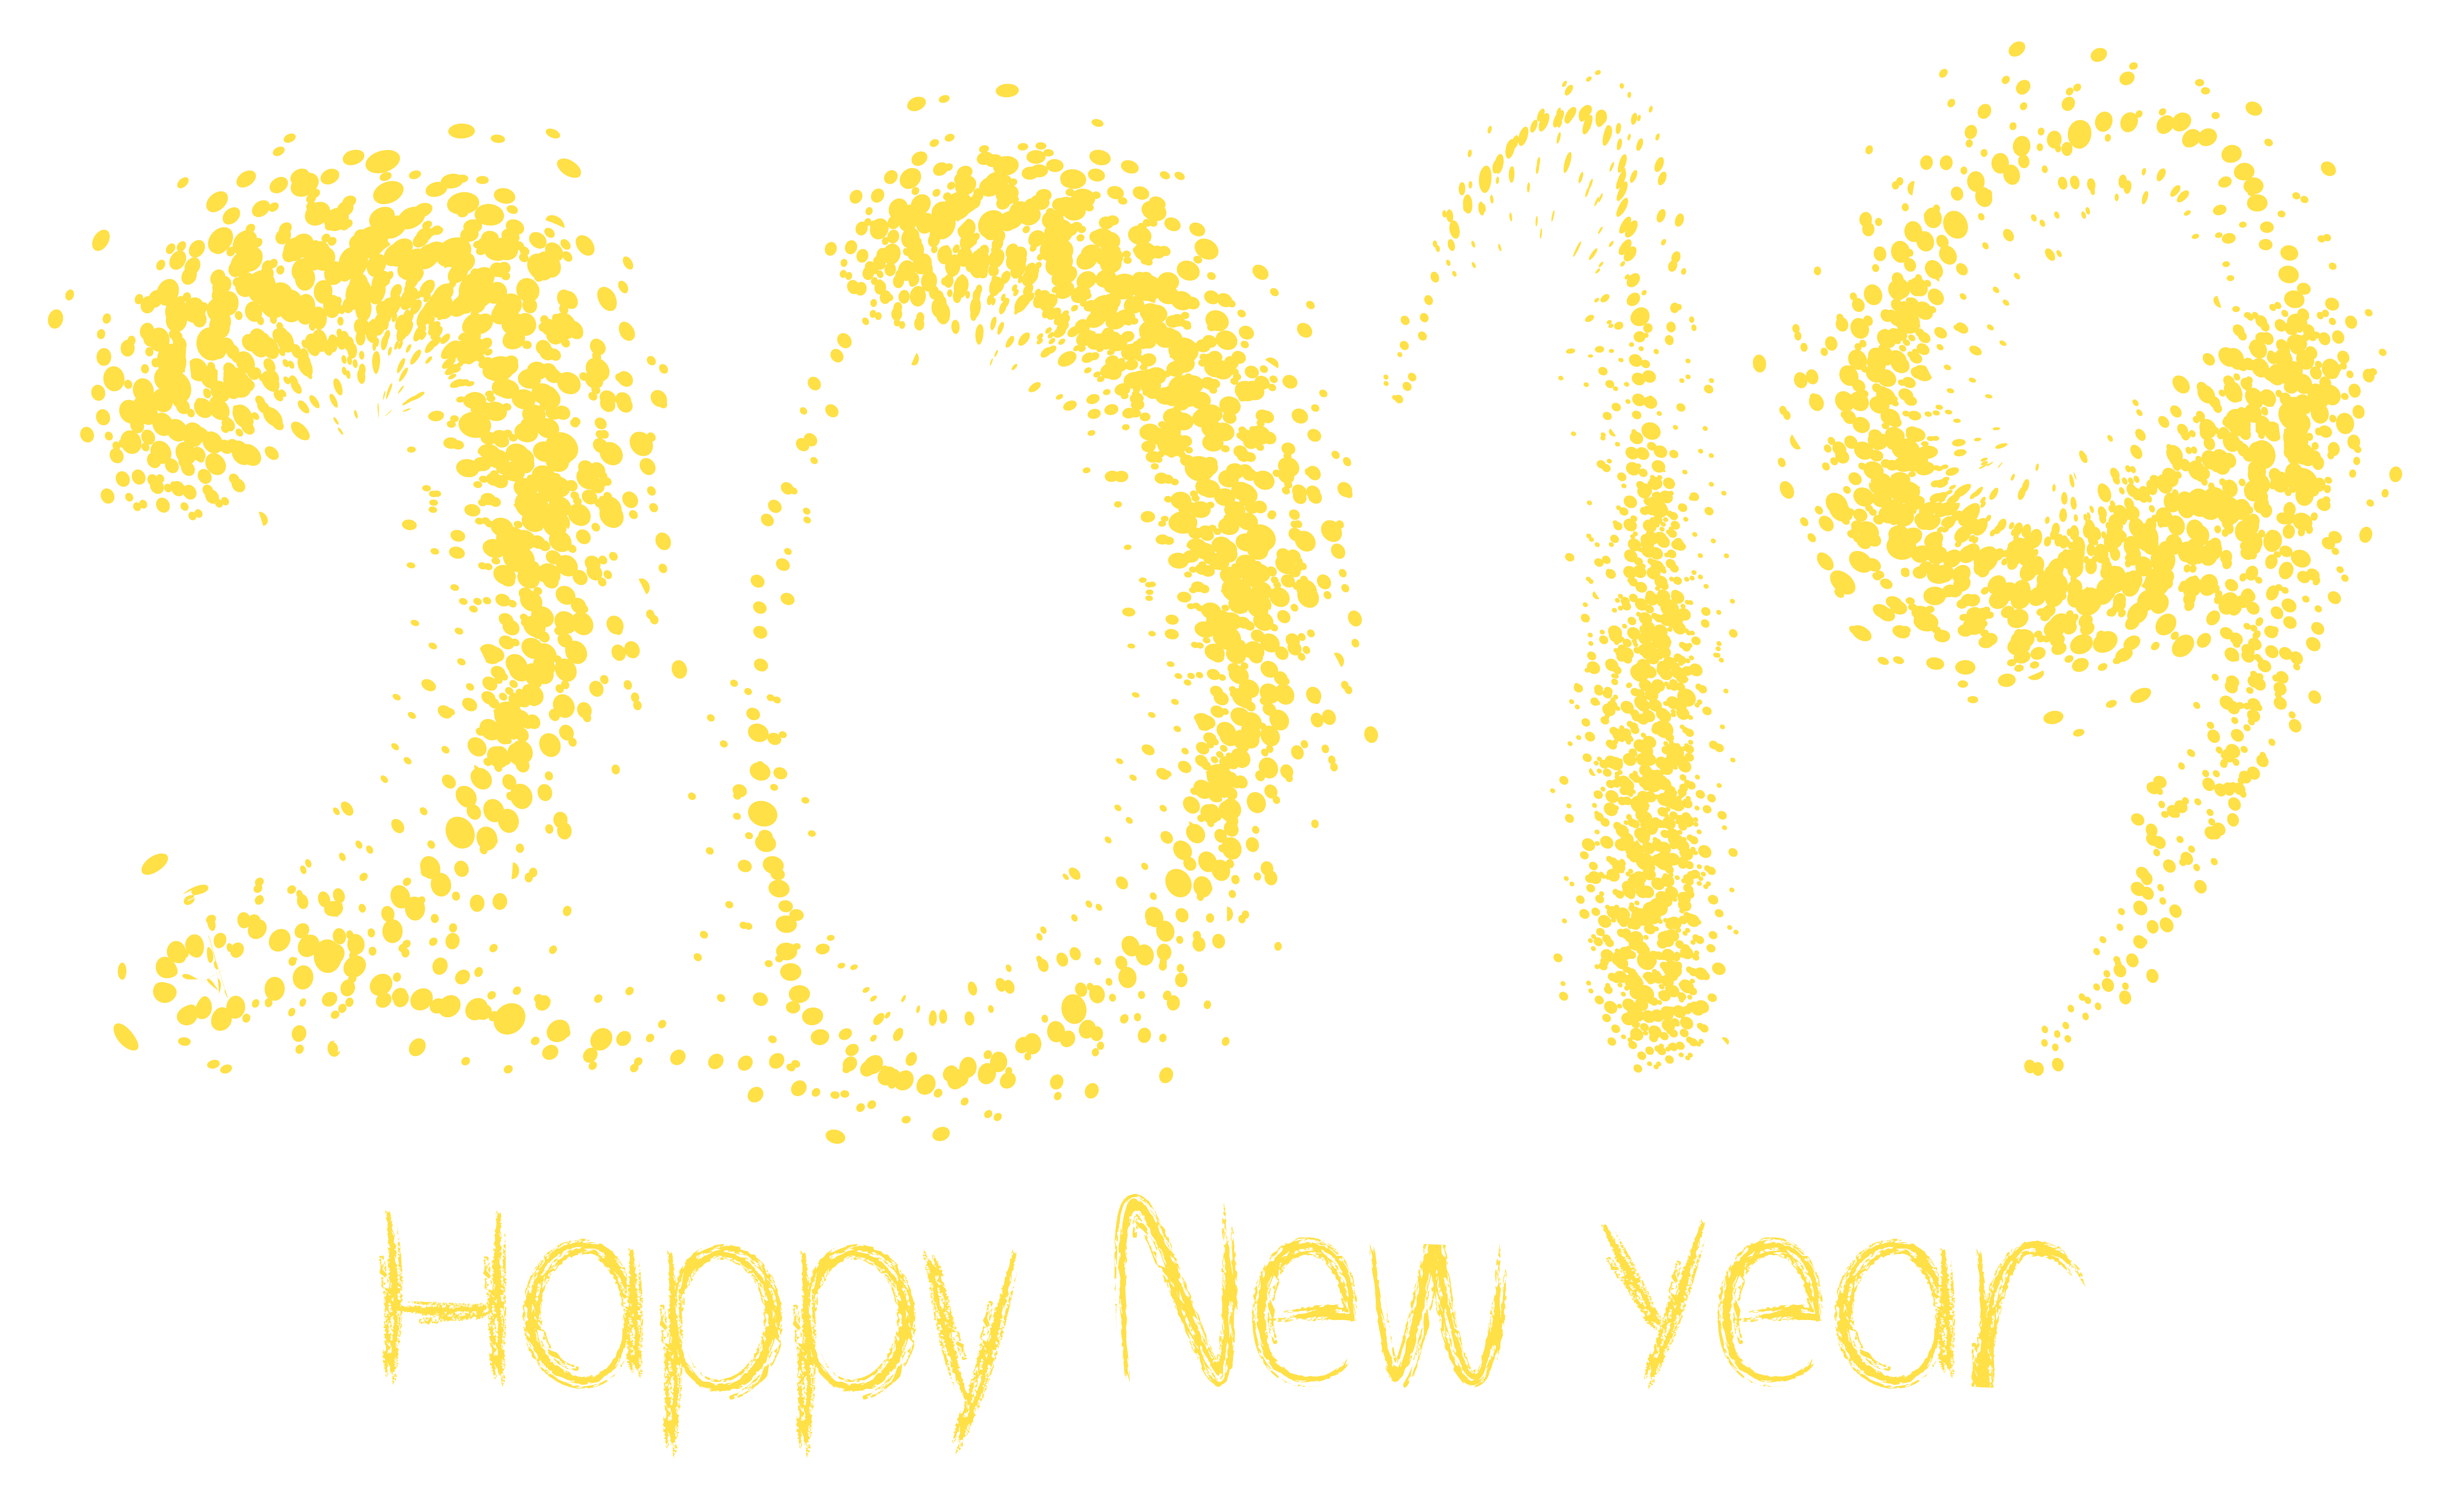 2019 Happy New Year PNG Clipart Image.